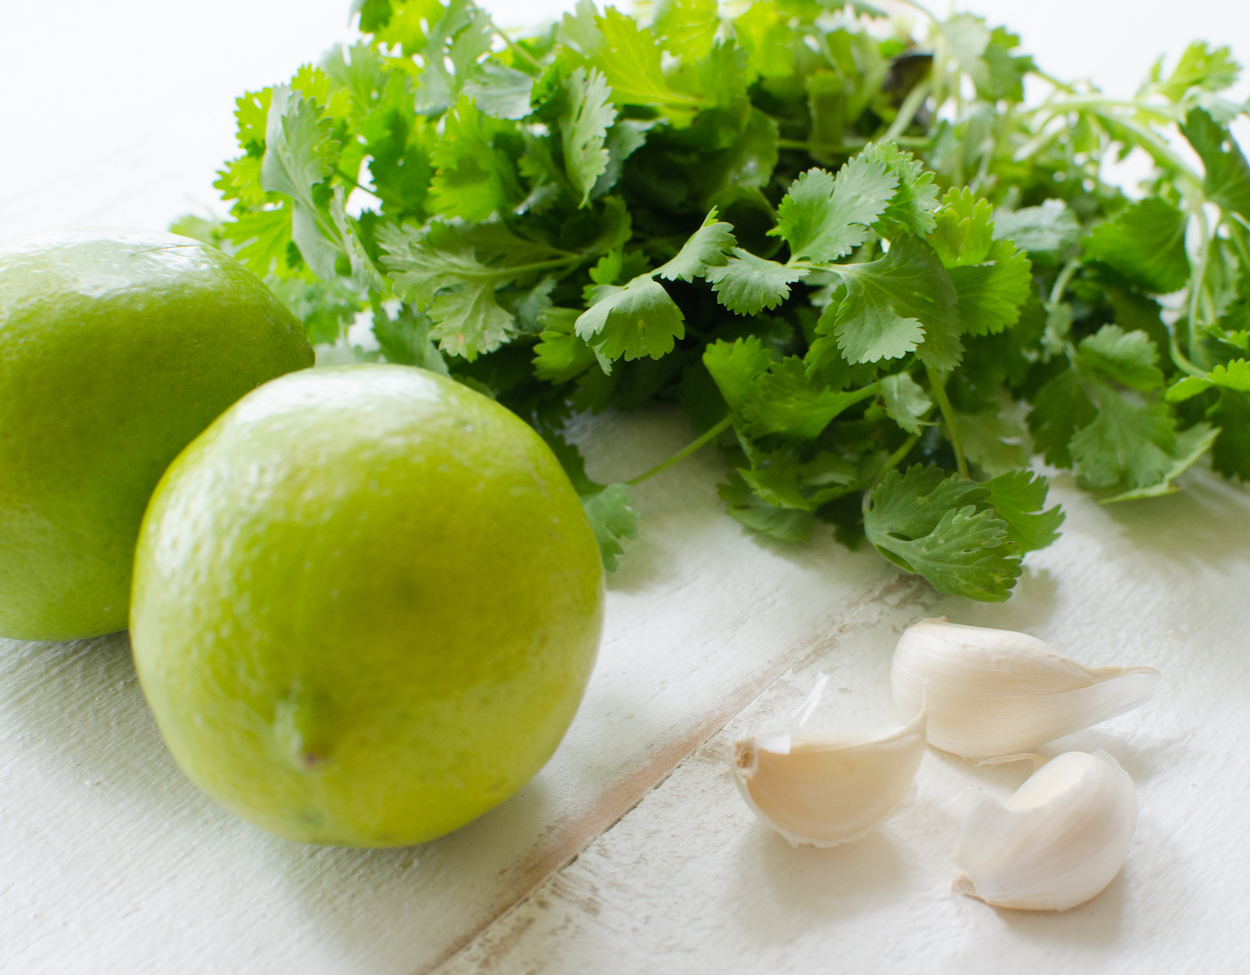 Lime, cilantro and garlic, tomatillo salsa